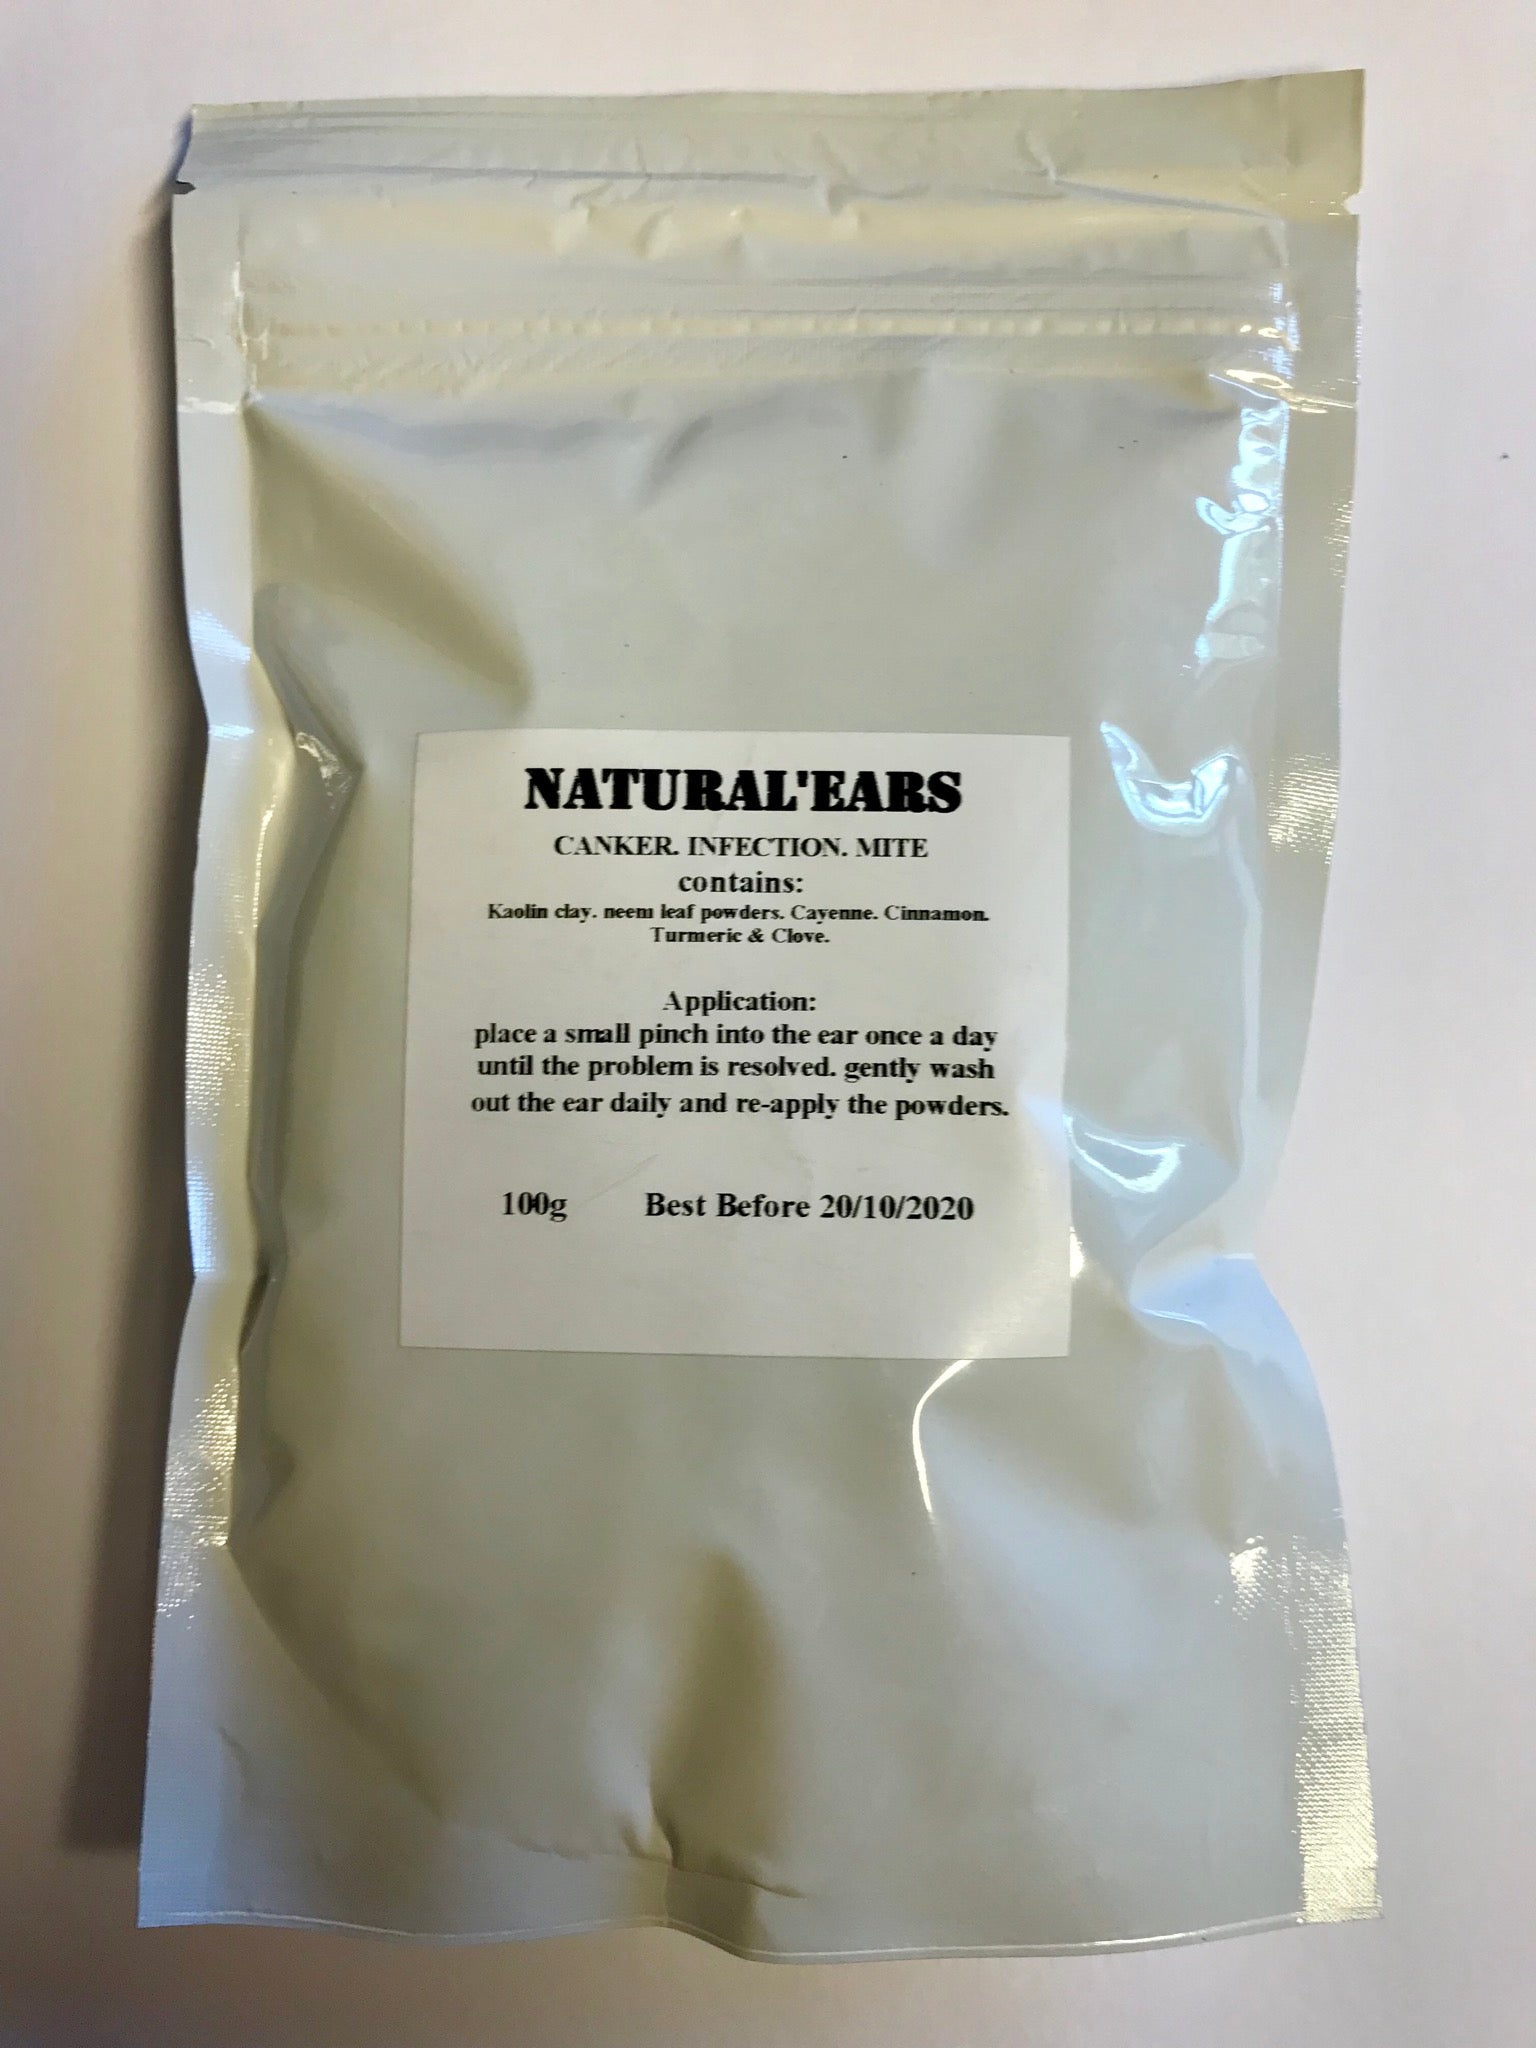 Natural Ears Canker and Mite Powder